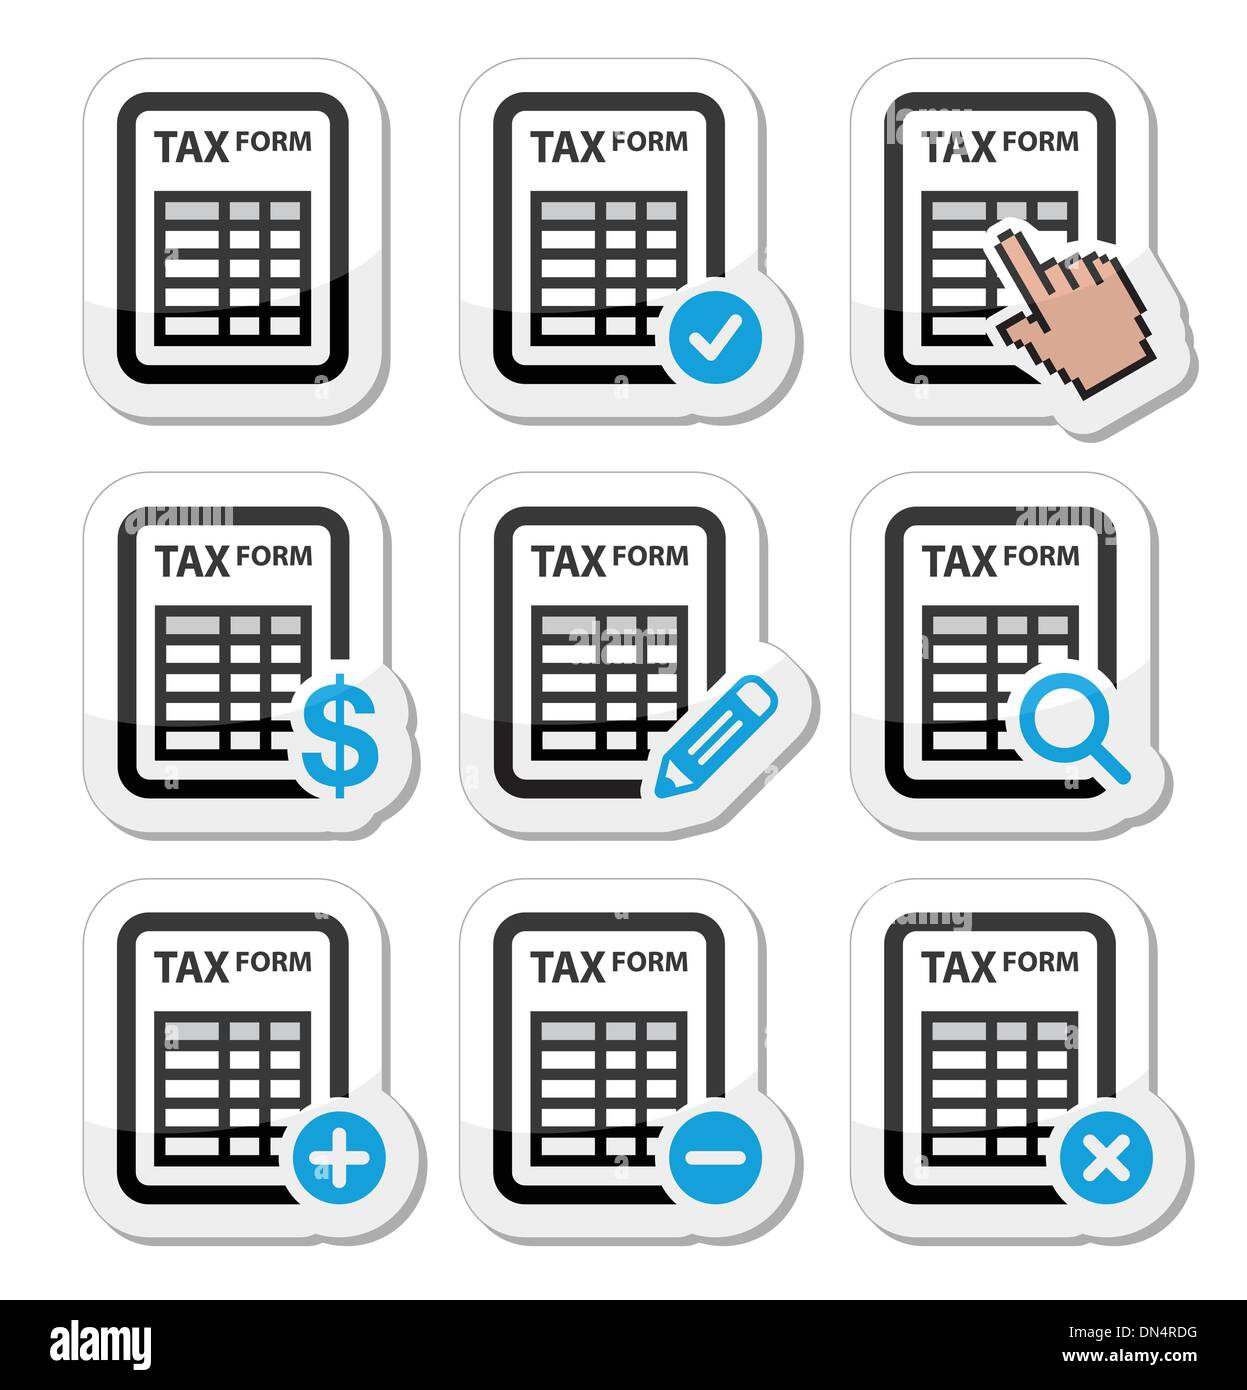 Tax form, taxation, finance vector icons set - Stock Image